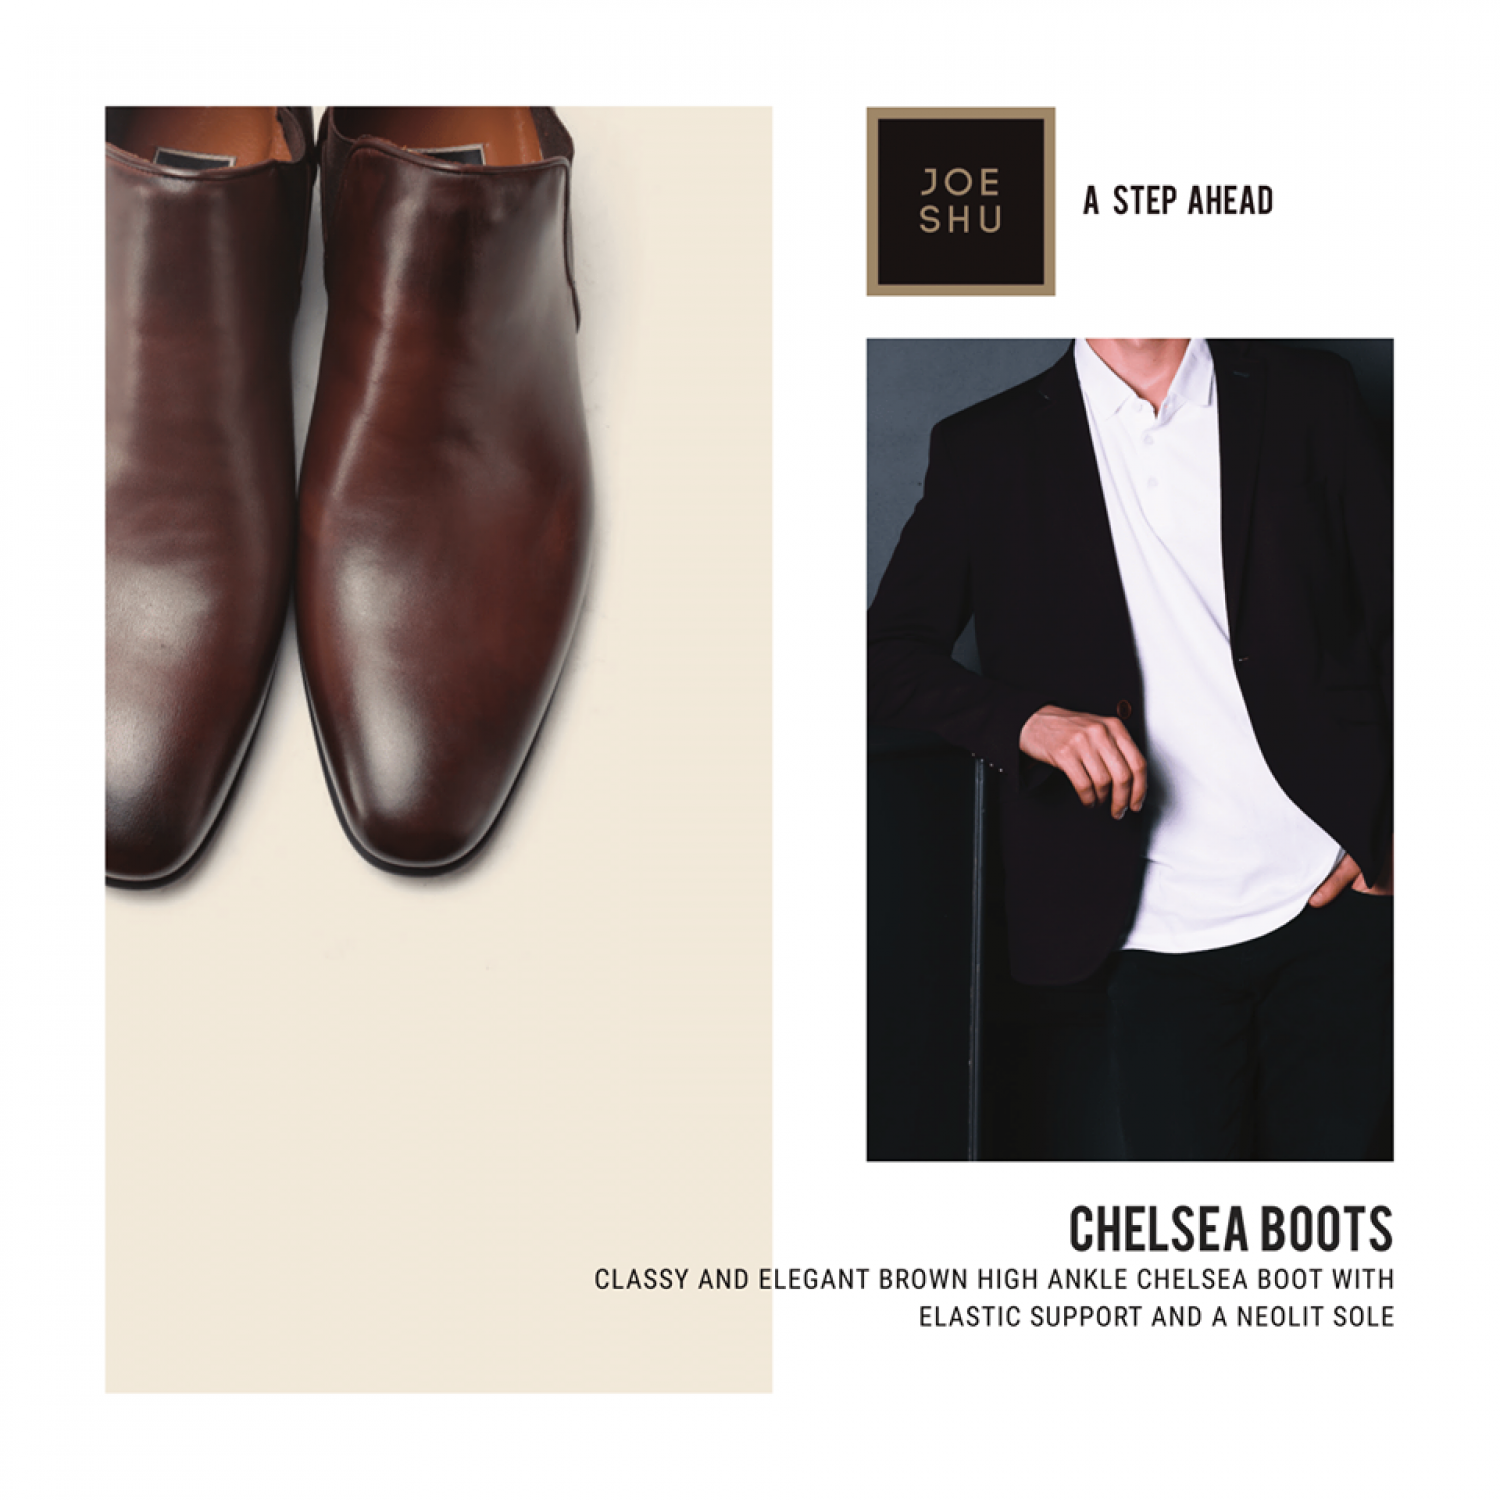 Chelsea Boots For Men | High Top Shoes For Men  Infographic